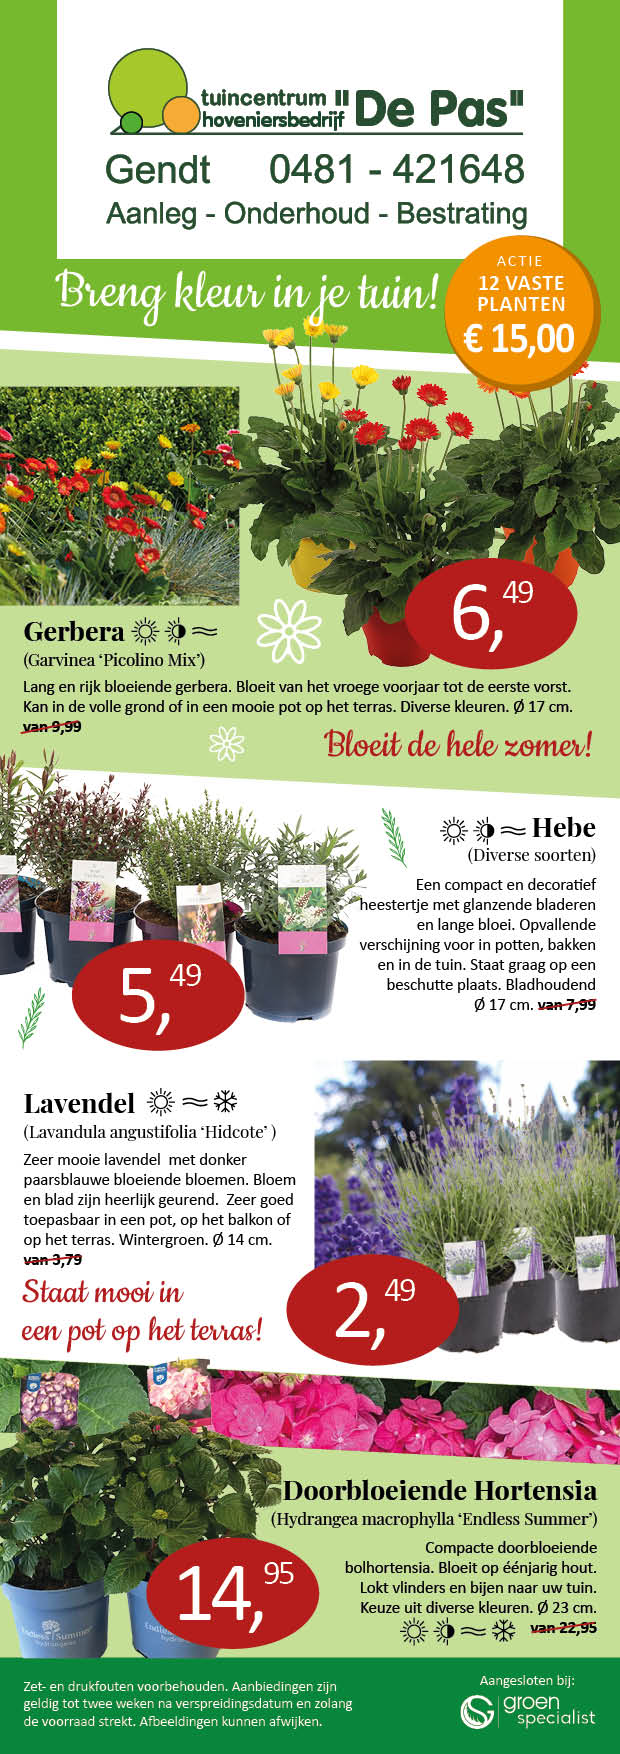 Aanbiedingen planten  Tuincentrum de Pas folder april